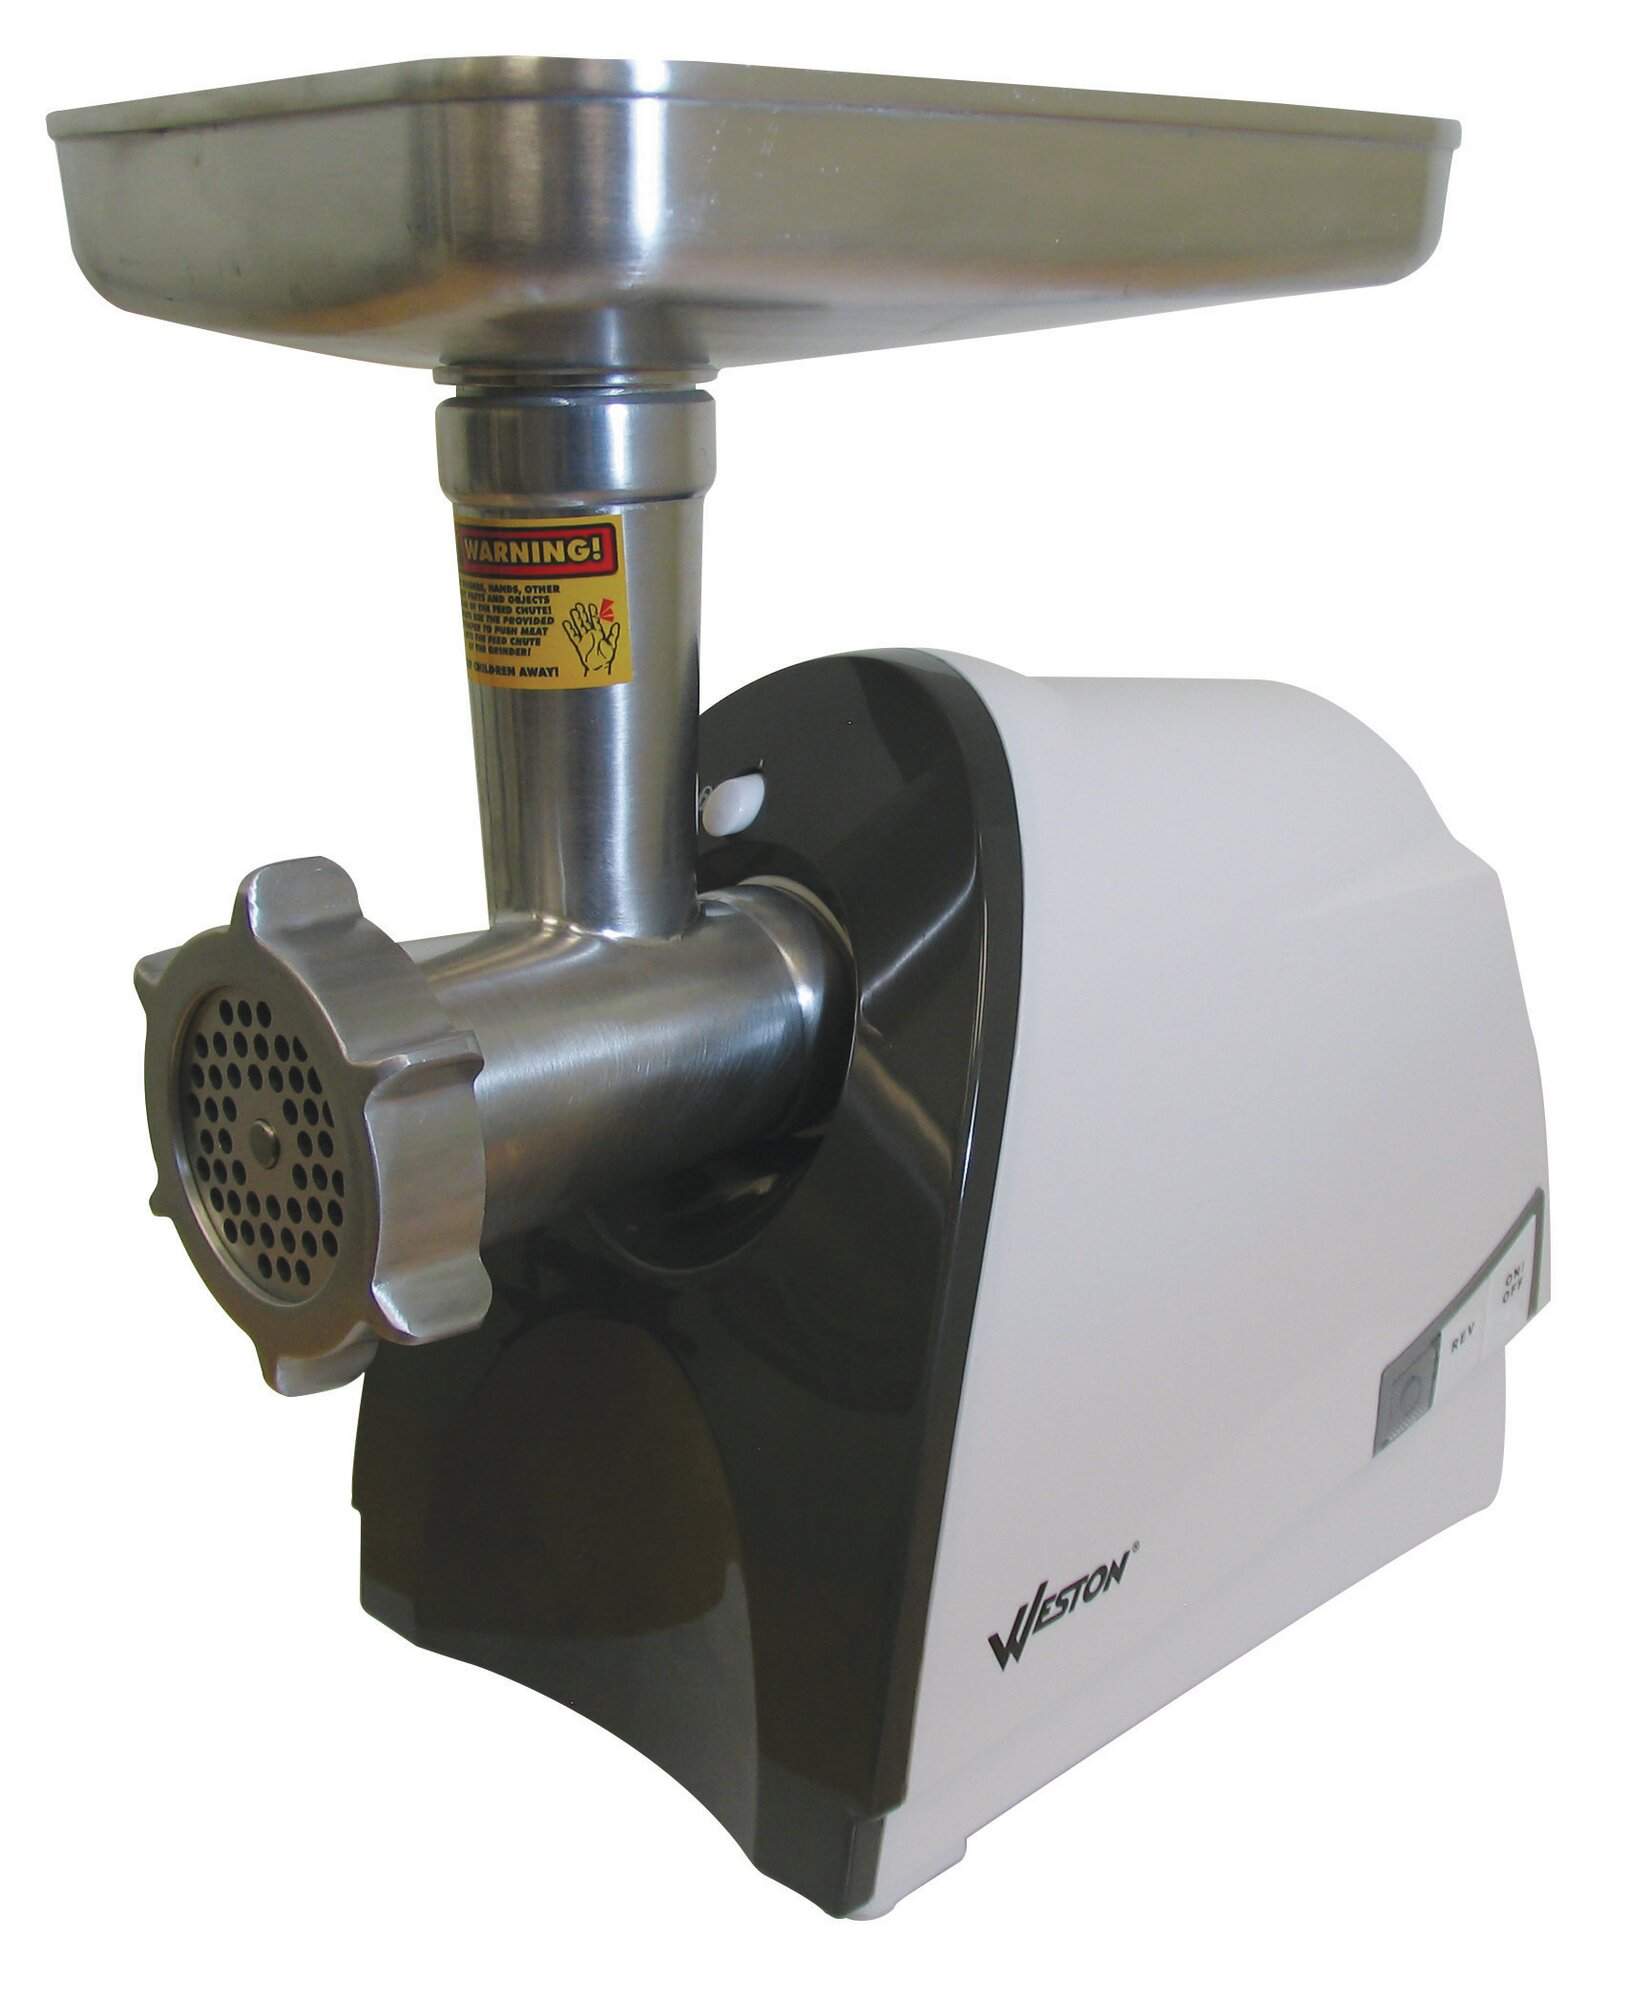 Electric Meat Grinders For Home Use ~ Weston heavy duty watt electric meat grinder